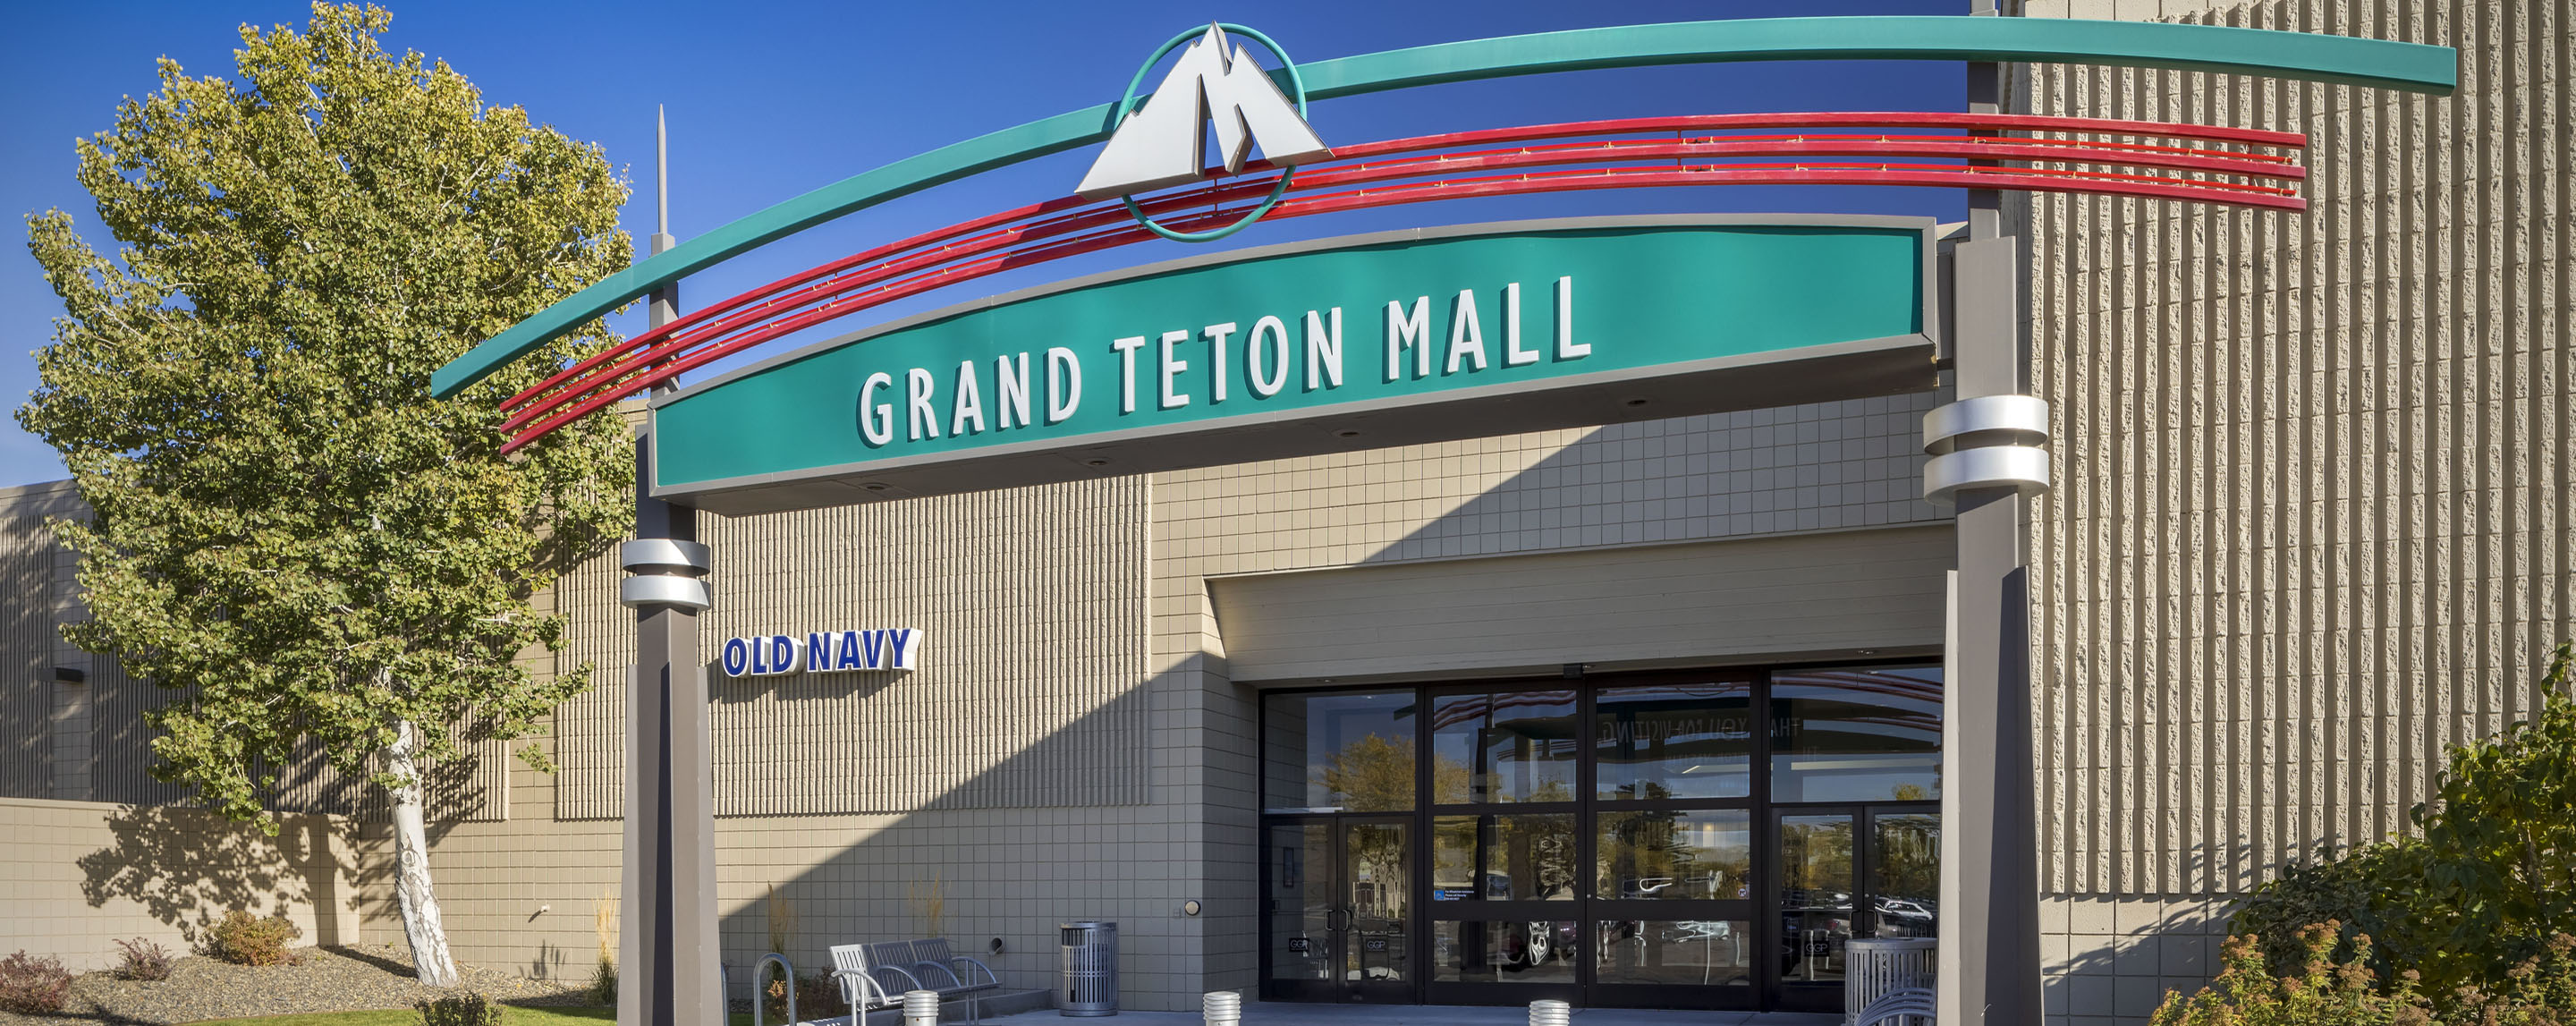 Grand Teton Mall Property